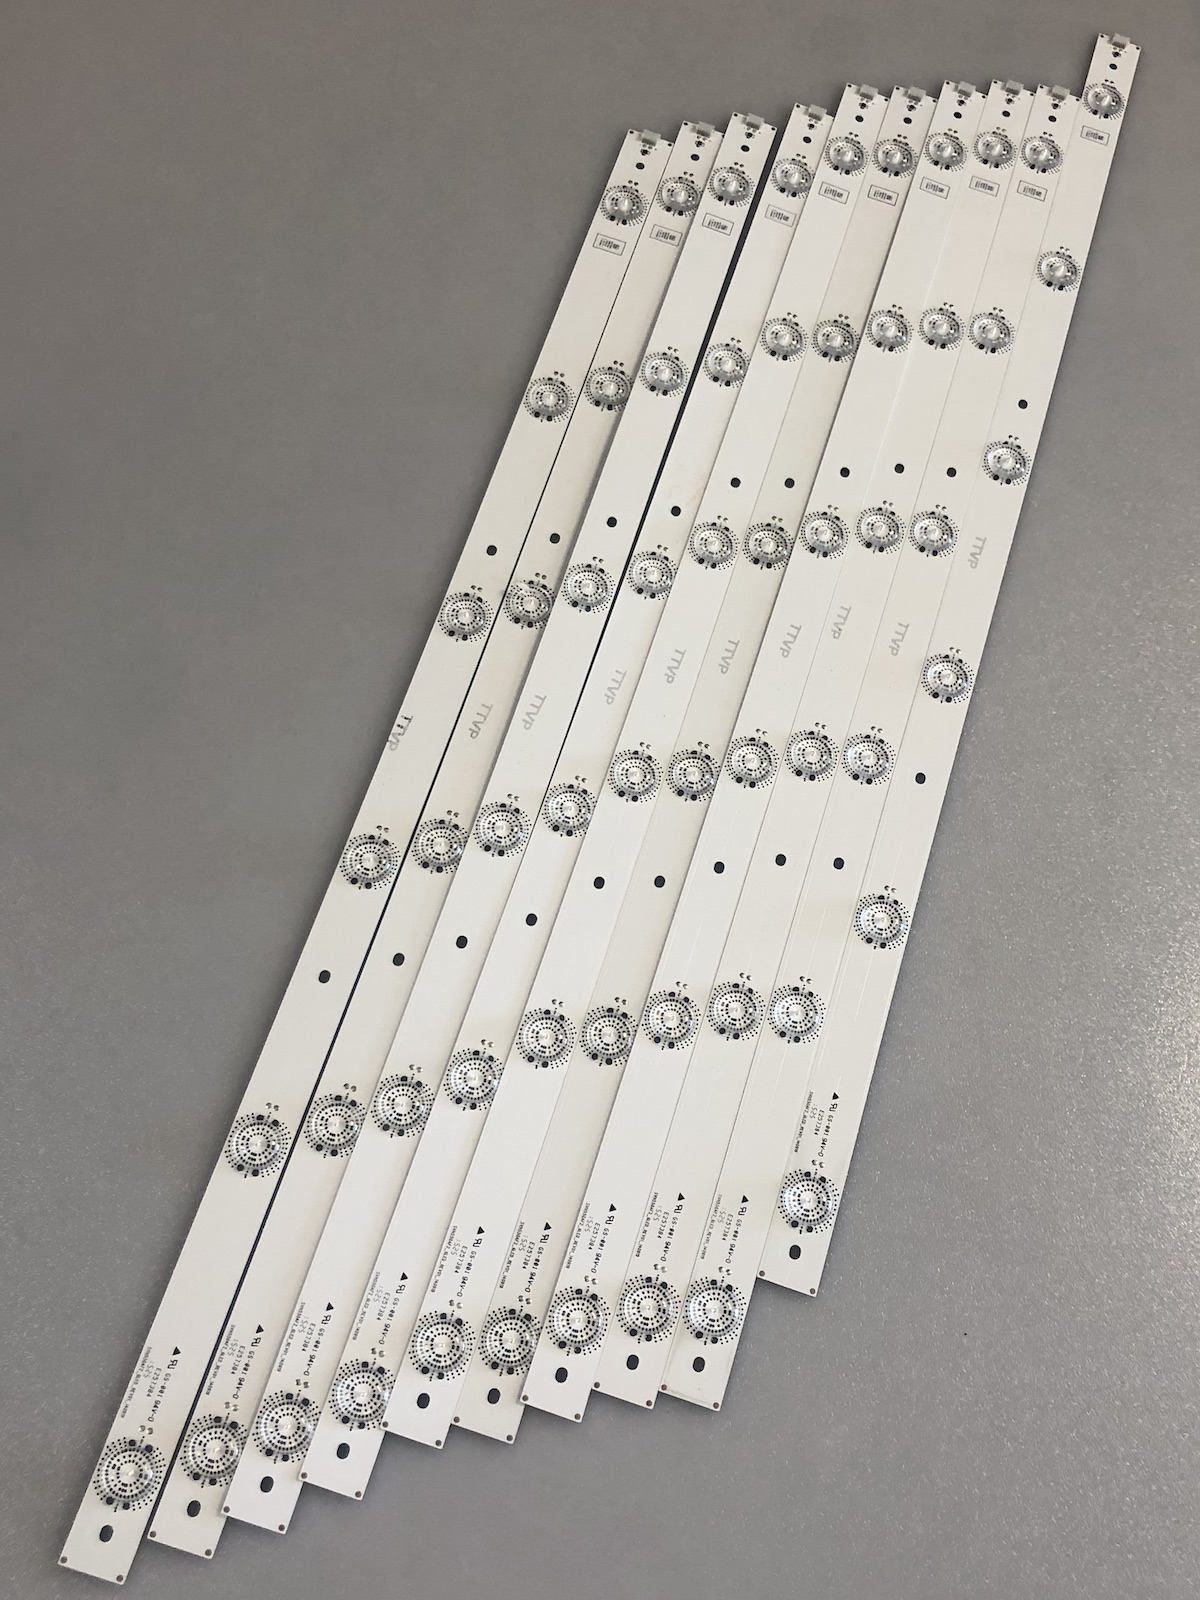 LG SVH550AF2 Led Strips for Model 55H7B